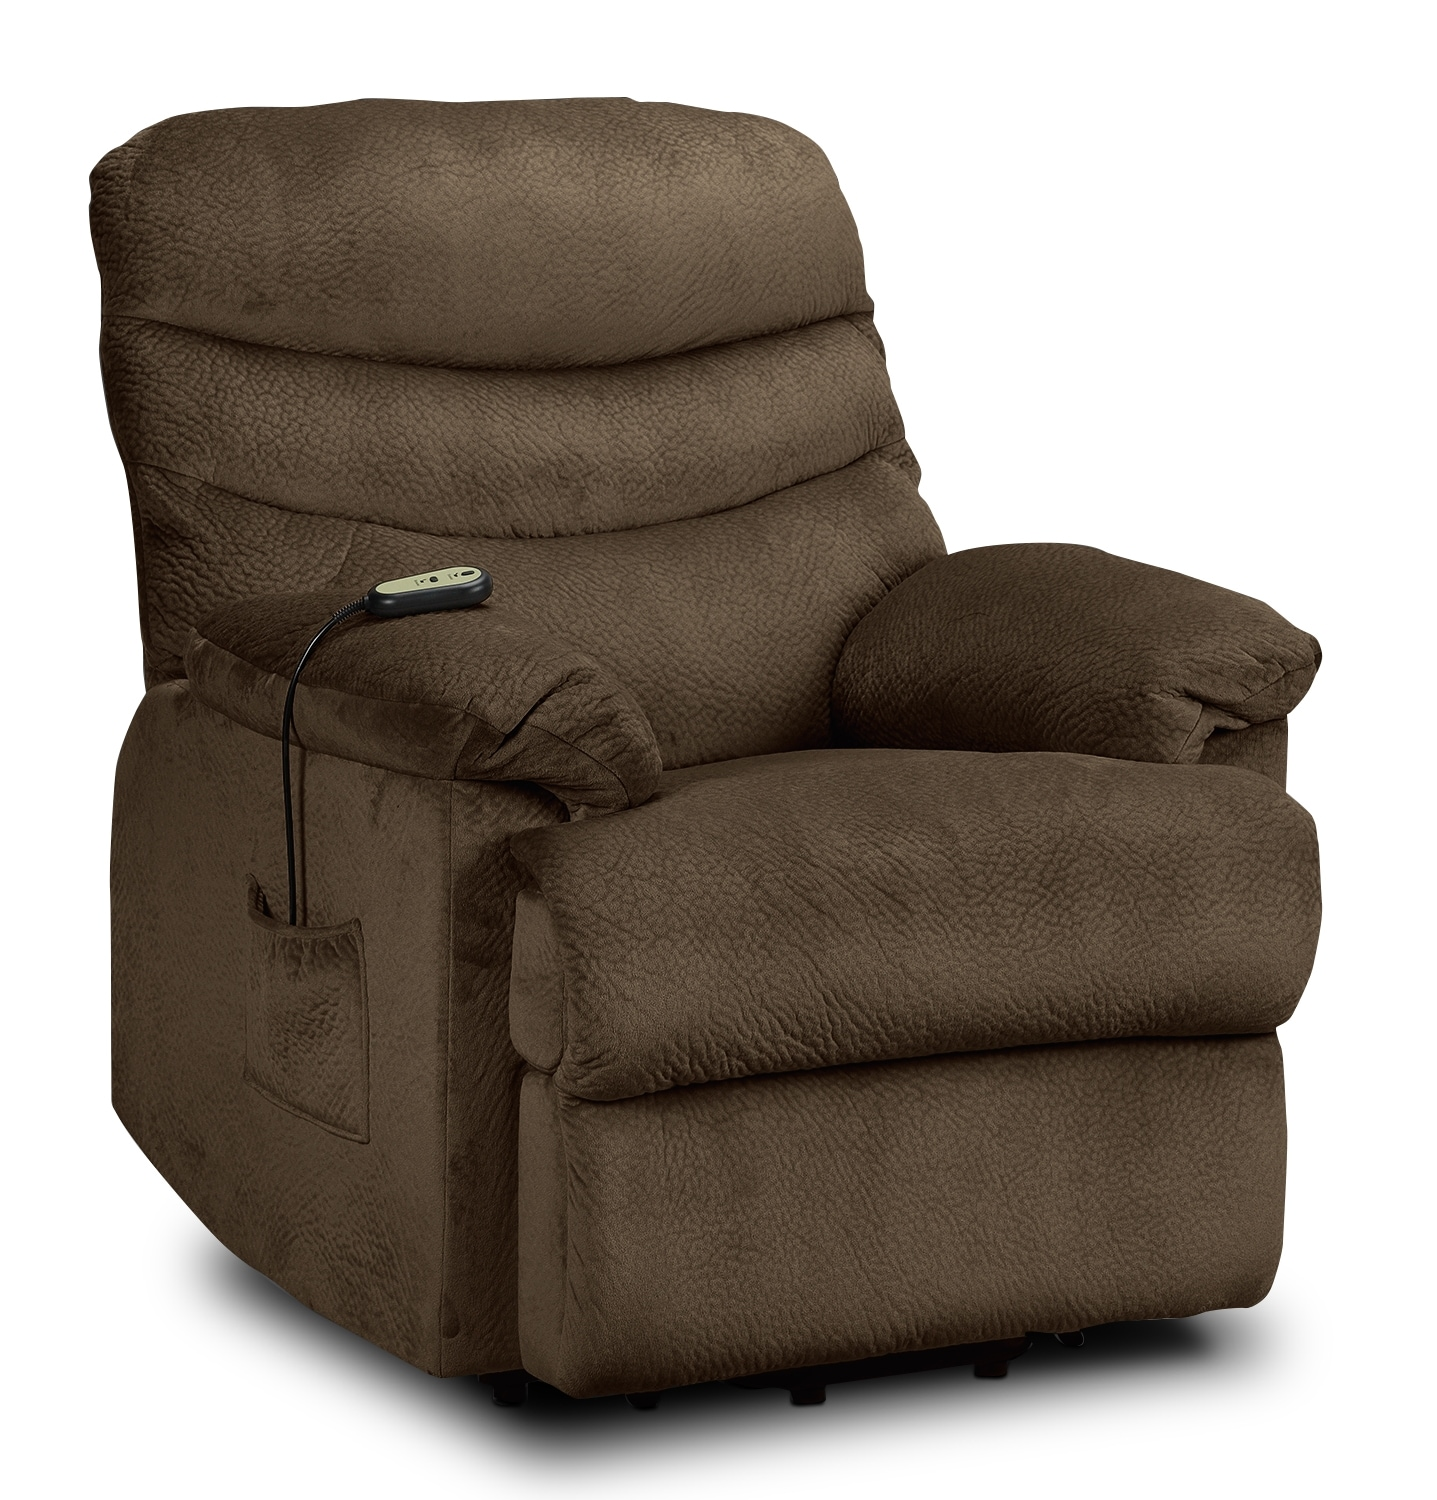 Snugglers Furniture Kitchener Reclining Chairs Leons